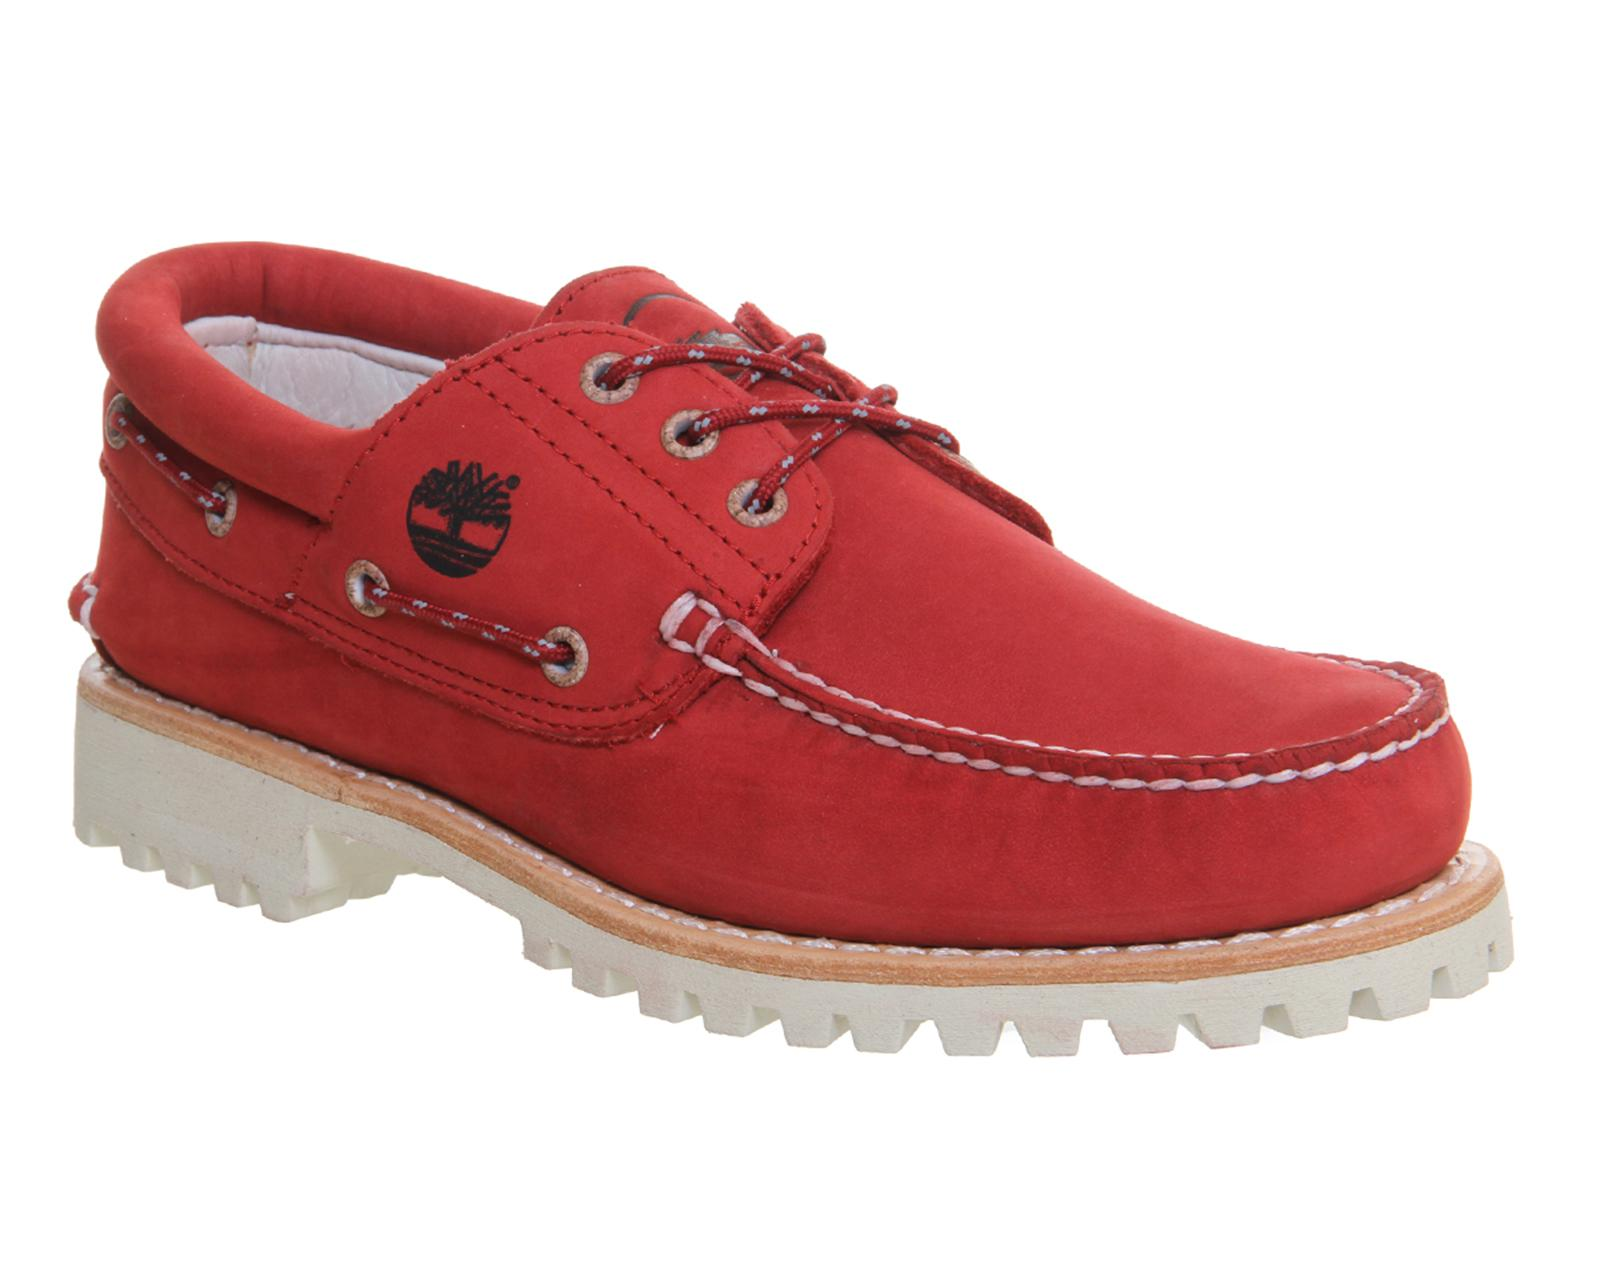 Timberland. Men's Red Lug Boat Shoes